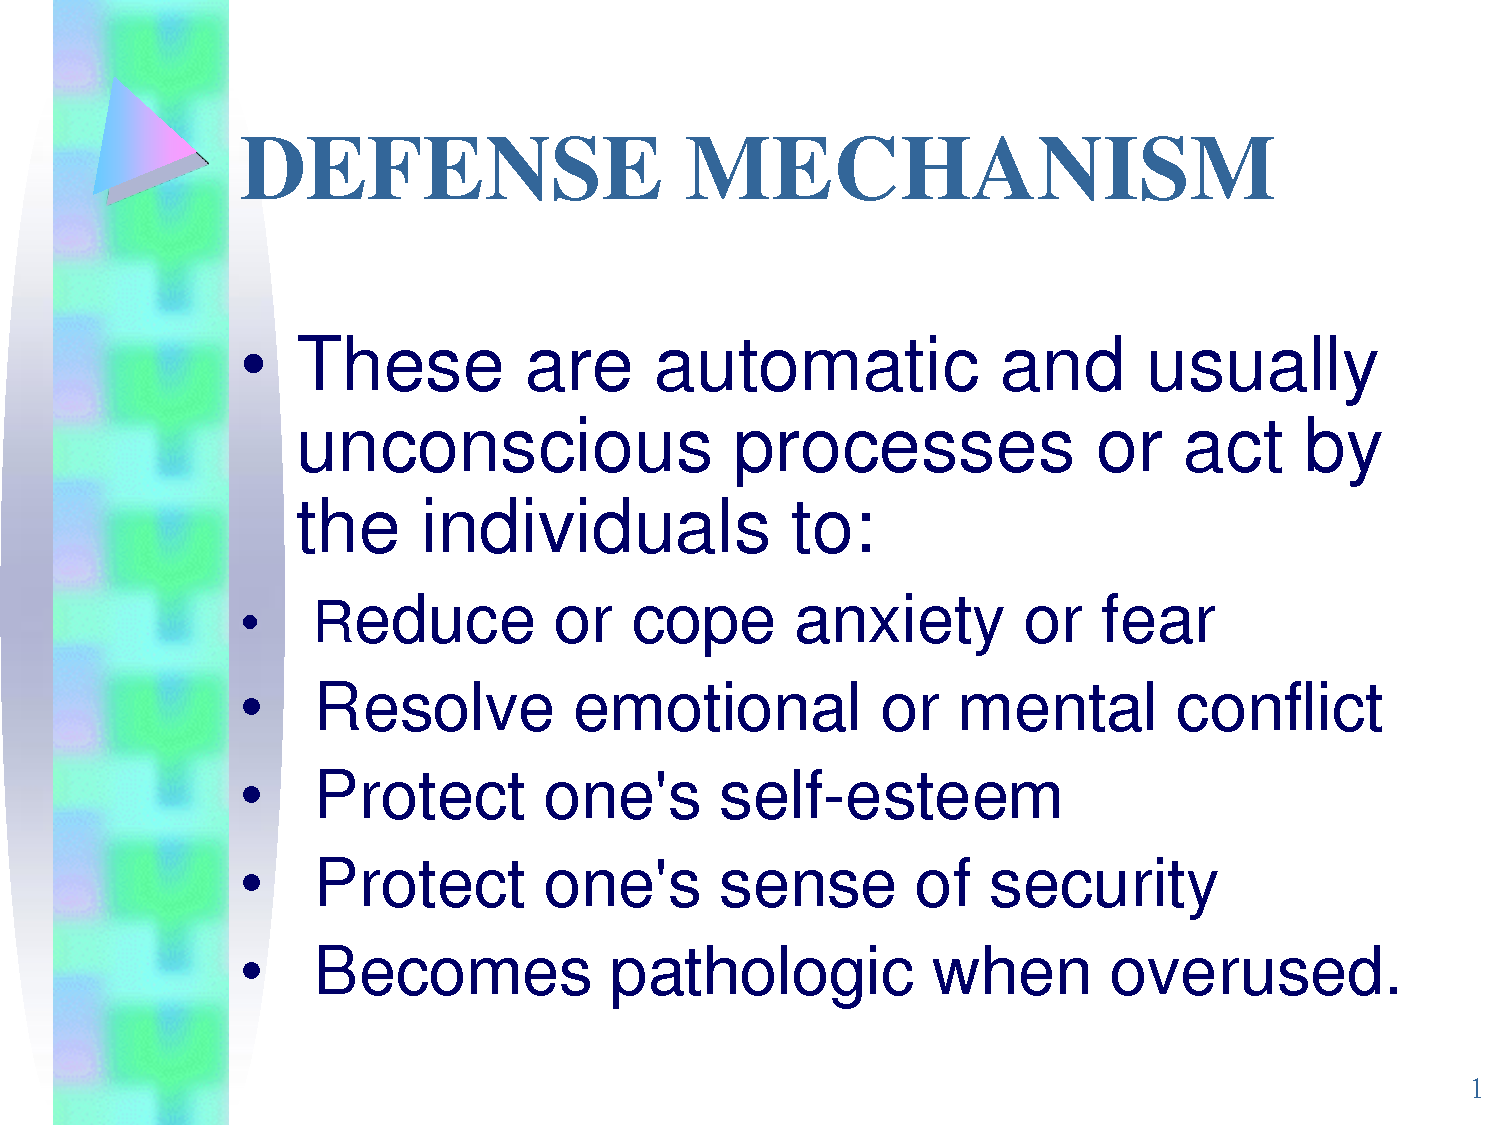 Why People Use Defense Mechanisms